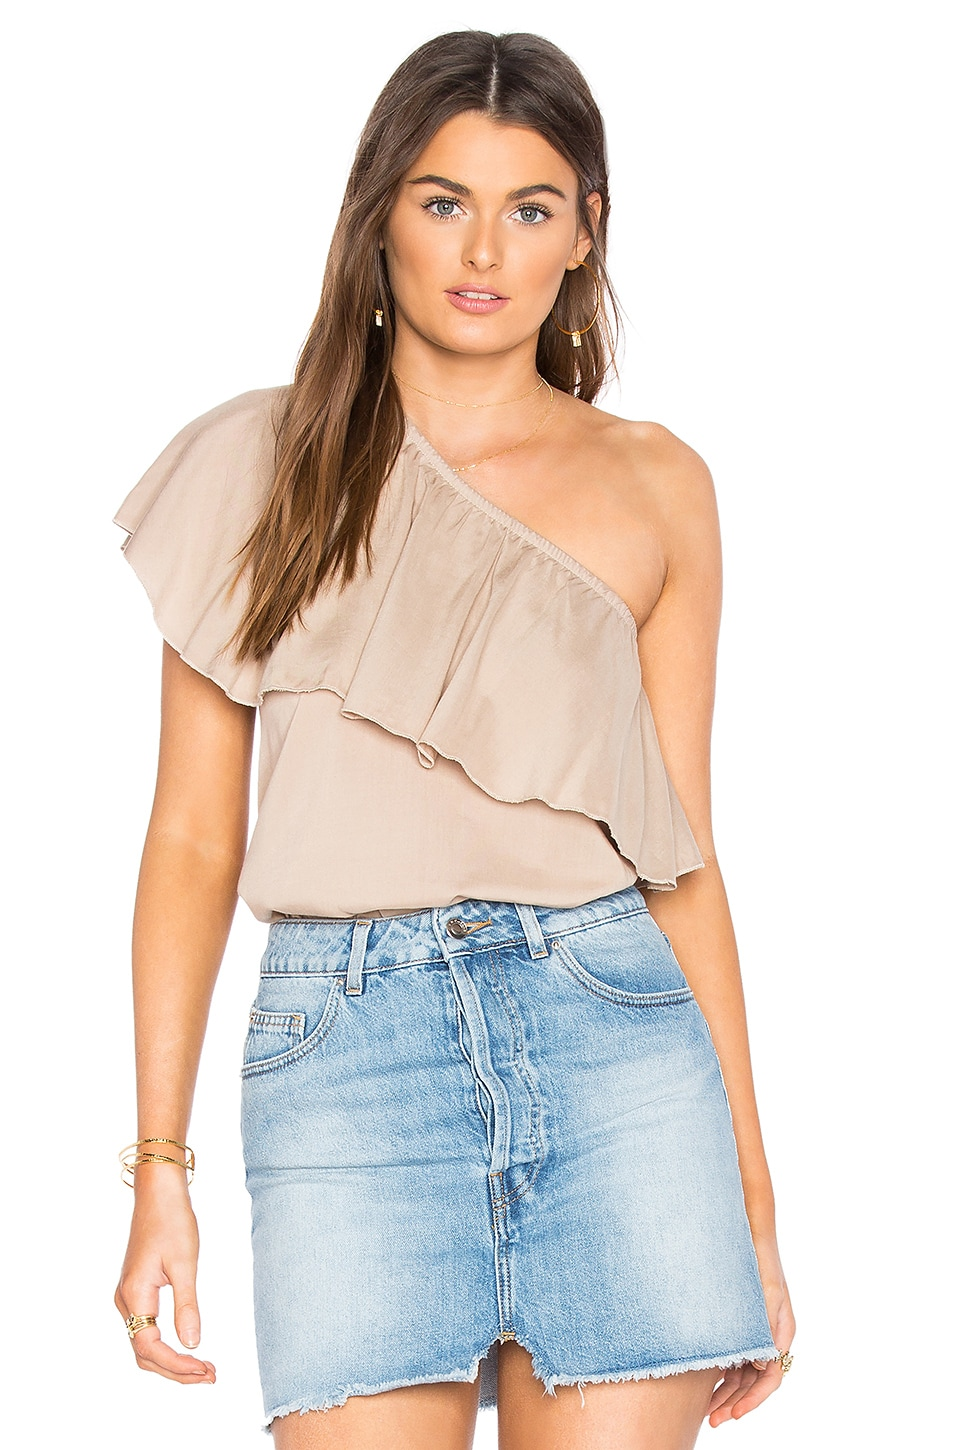 De Lacy Fiona Top in Taupe